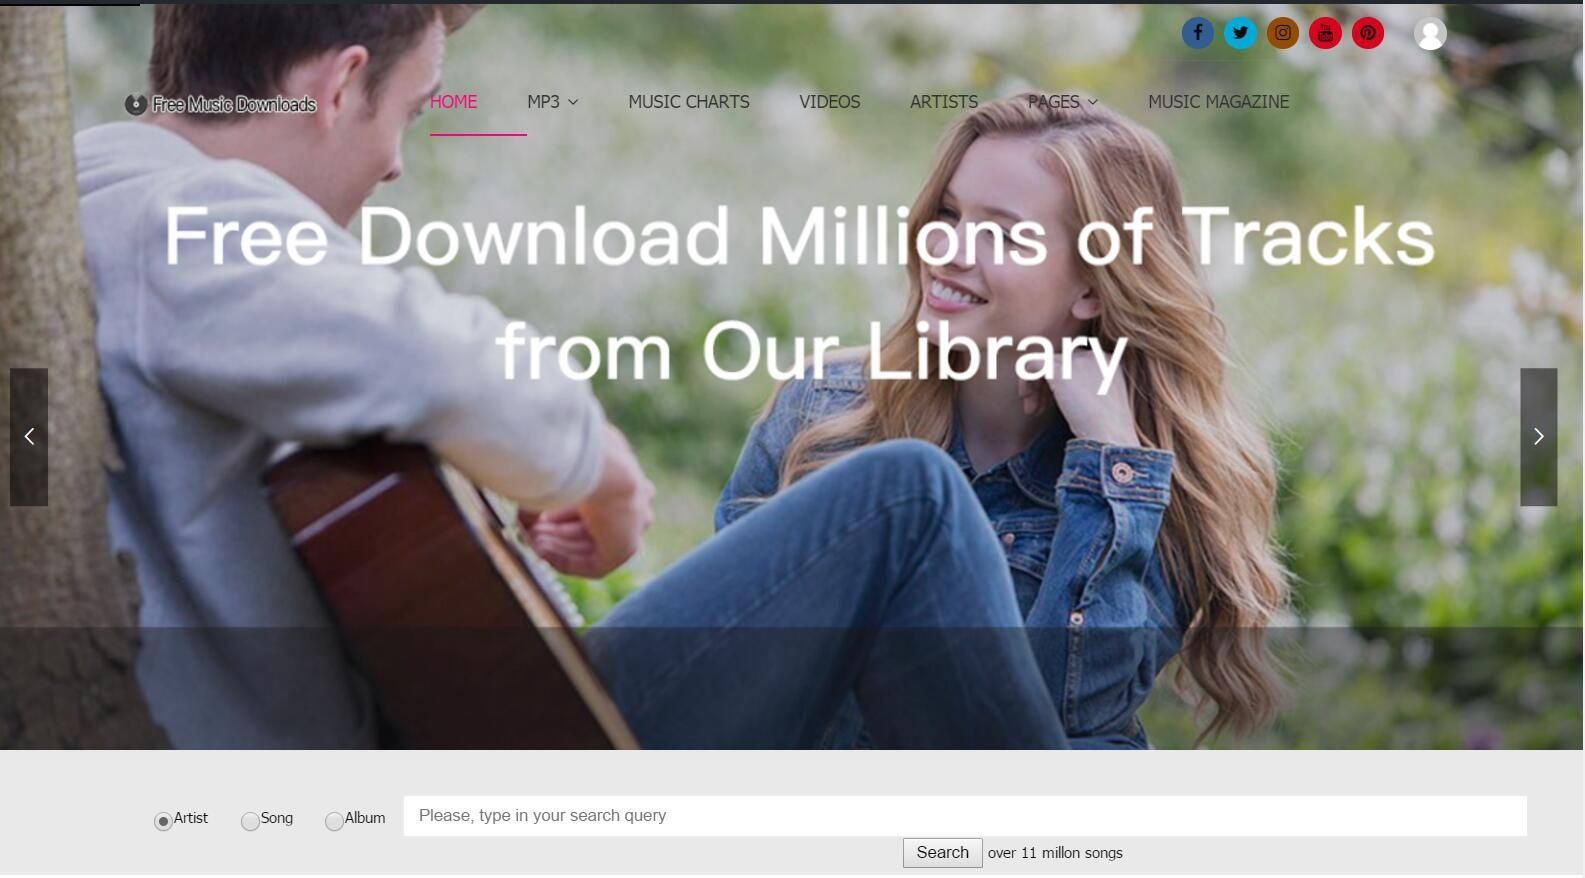 Which is a better site for downloading songs for free? - Quora